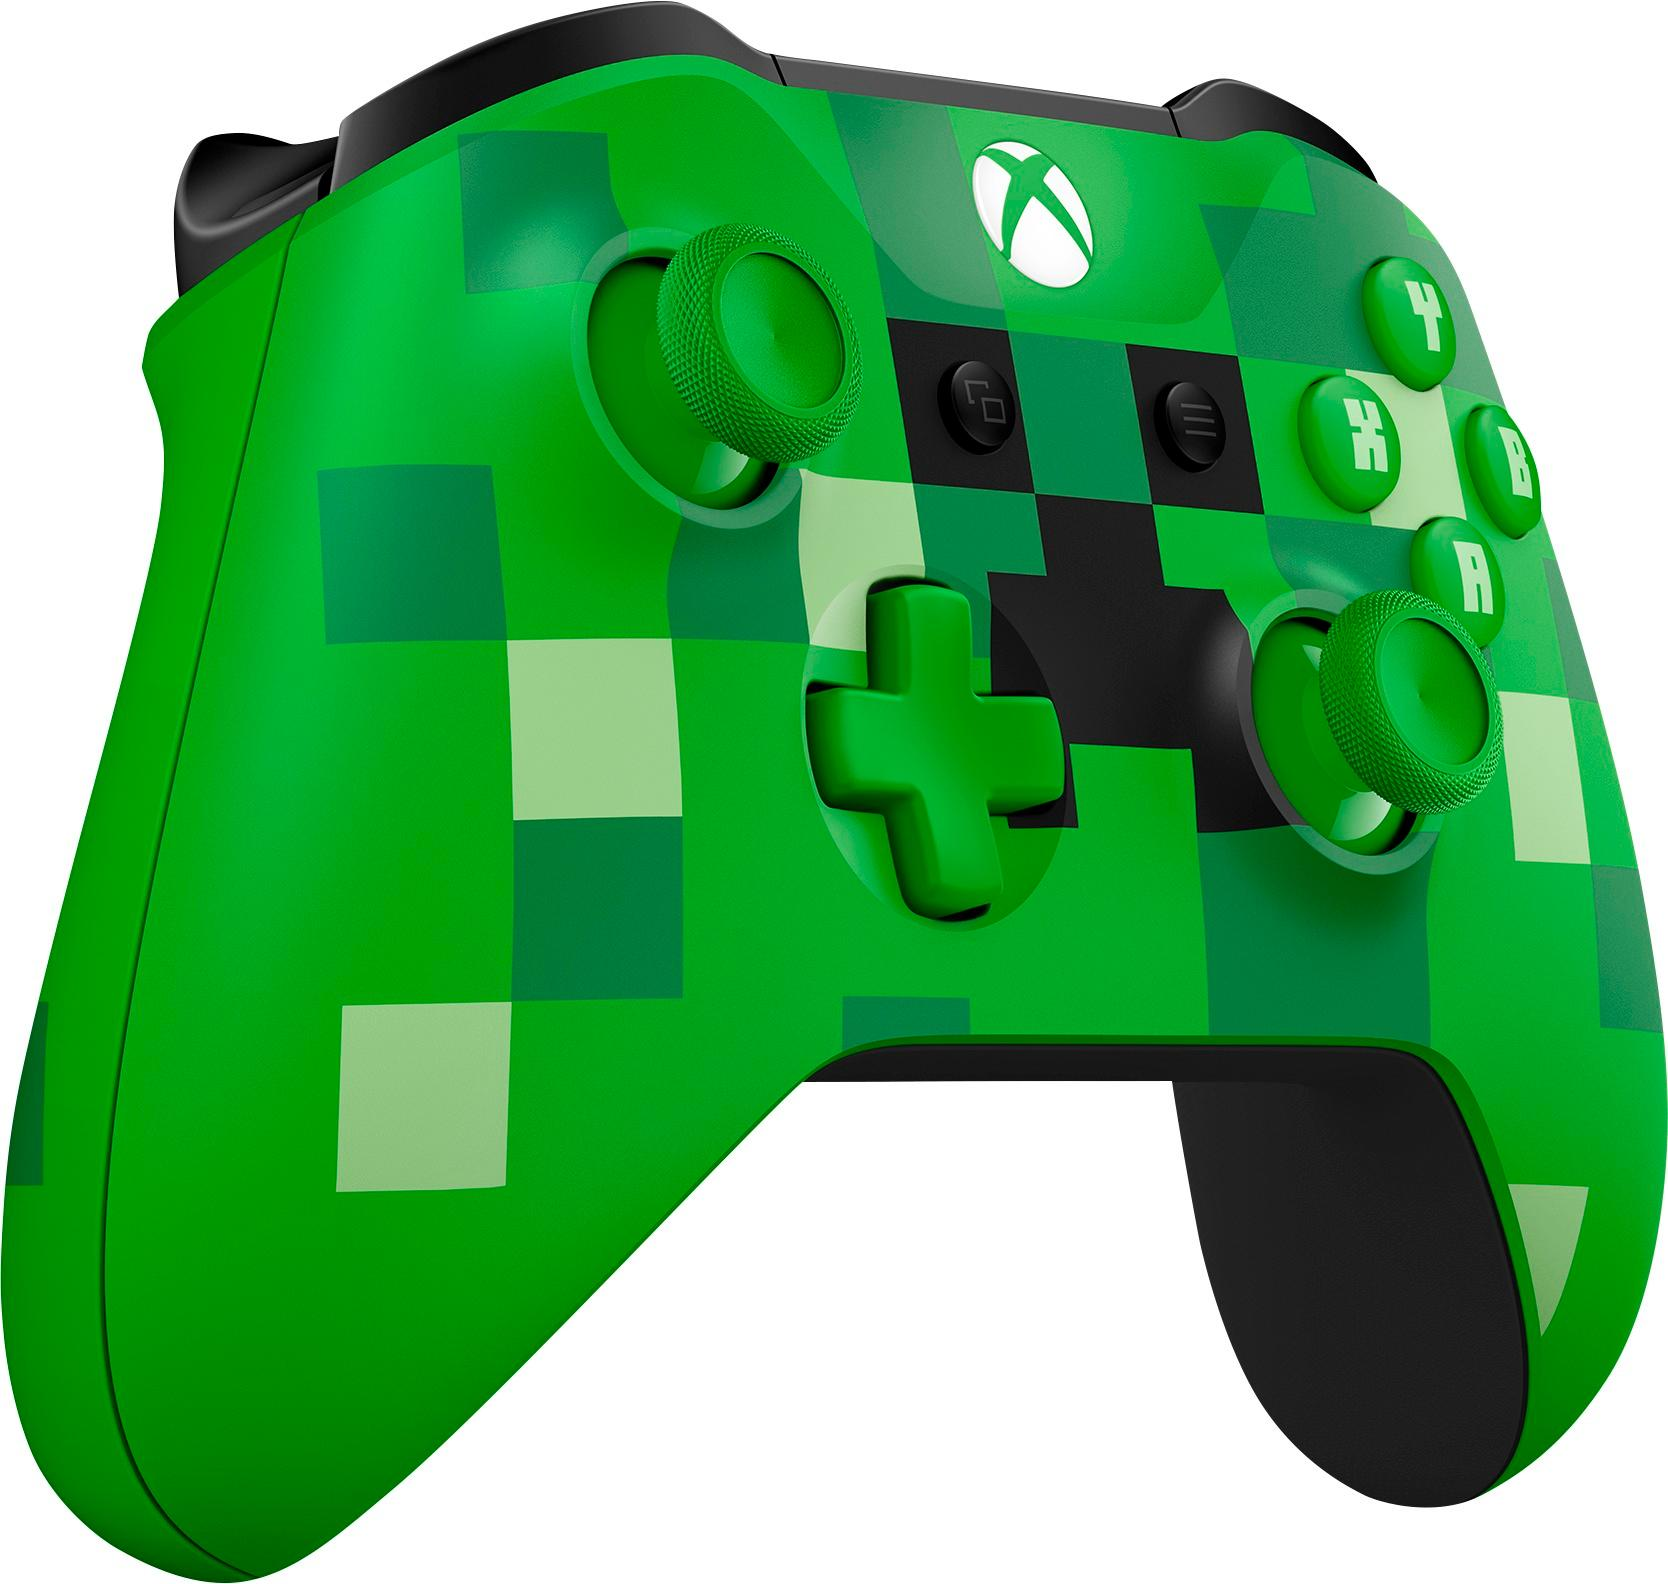 Xbox clipart joy stick. Free download best on